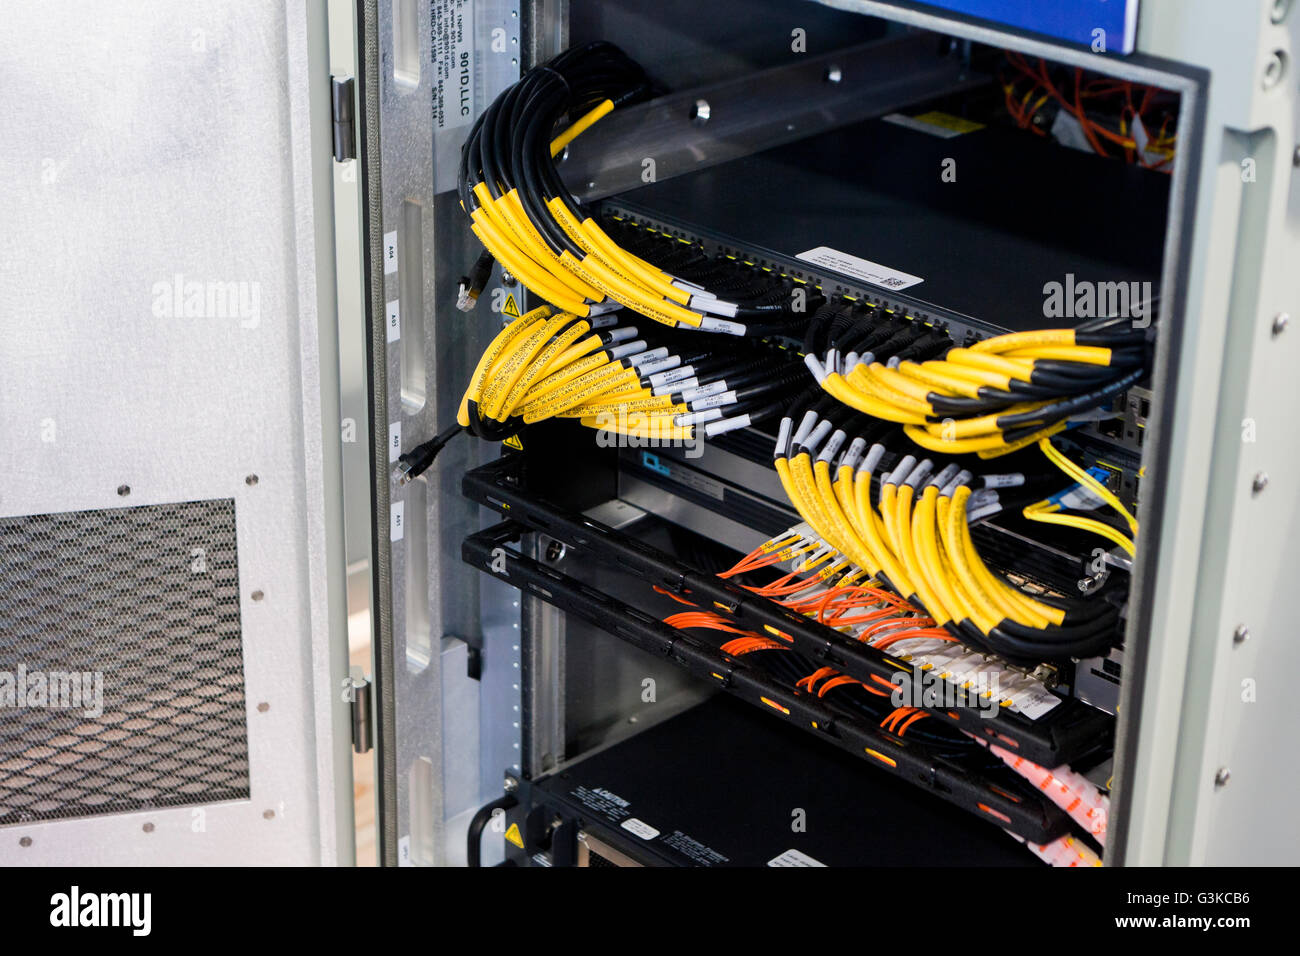 Network cable connectors on back of switch hub - USA - Stock Image